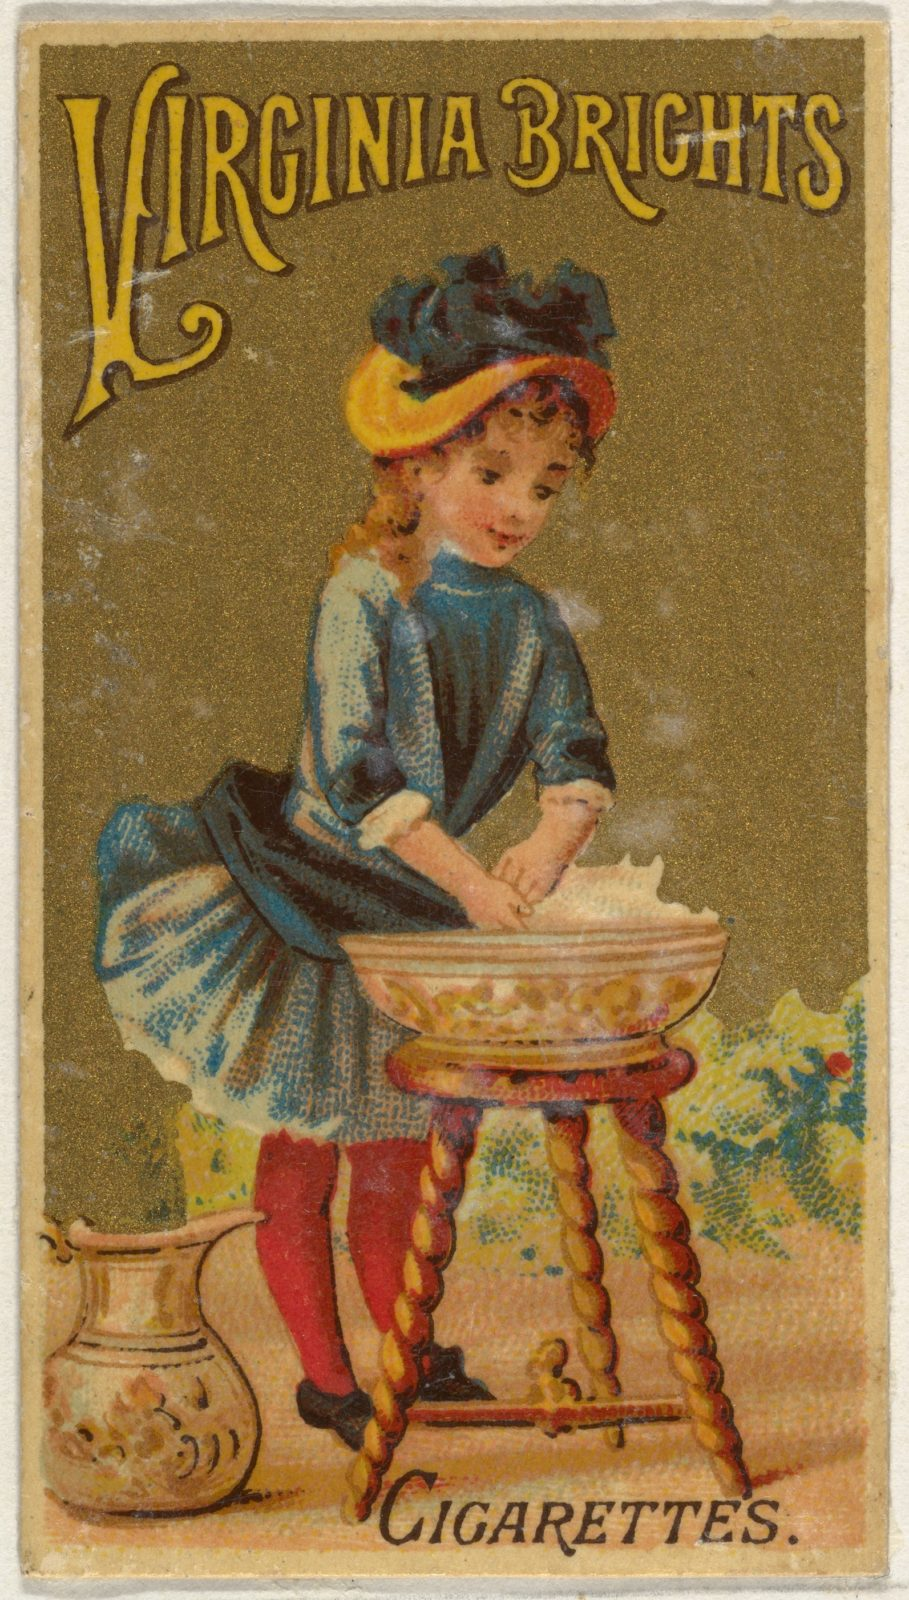 From the Girls and Children series (N64) promoting Virginia Brights Cigarettes for Allen & Ginter brand tobacco products